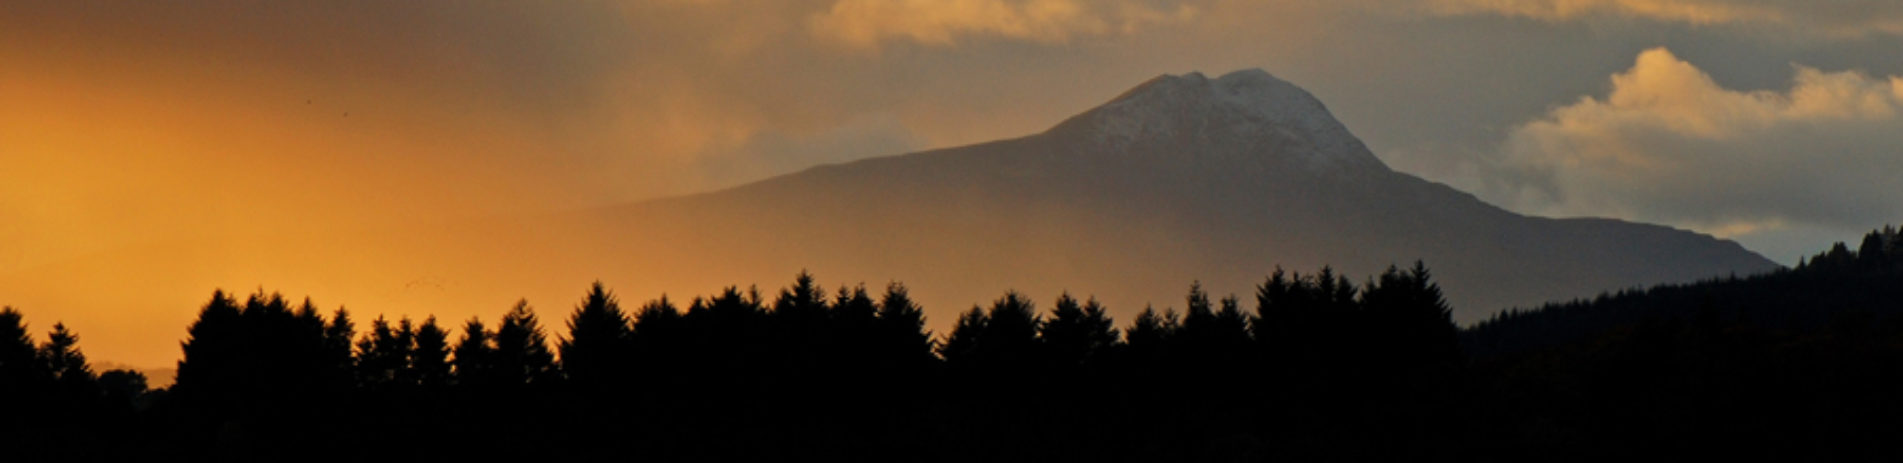 evening-light-on-ben-lomond-and-lake-of-menteith